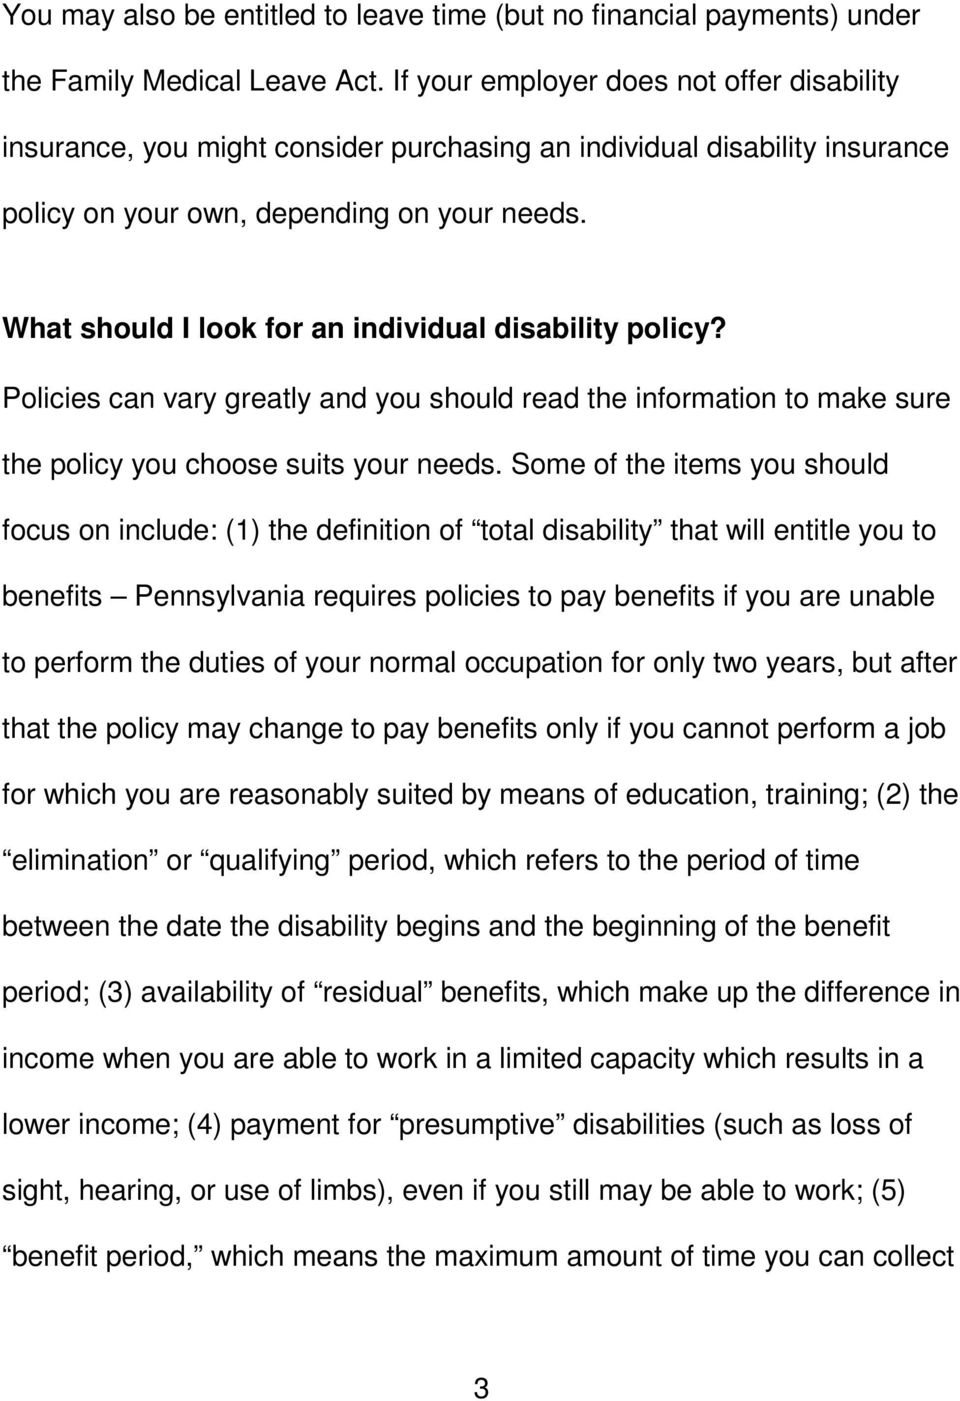 What should I look for an individual disability policy? Policies can vary greatly and you should read the information to make sure the policy you choose suits your needs.